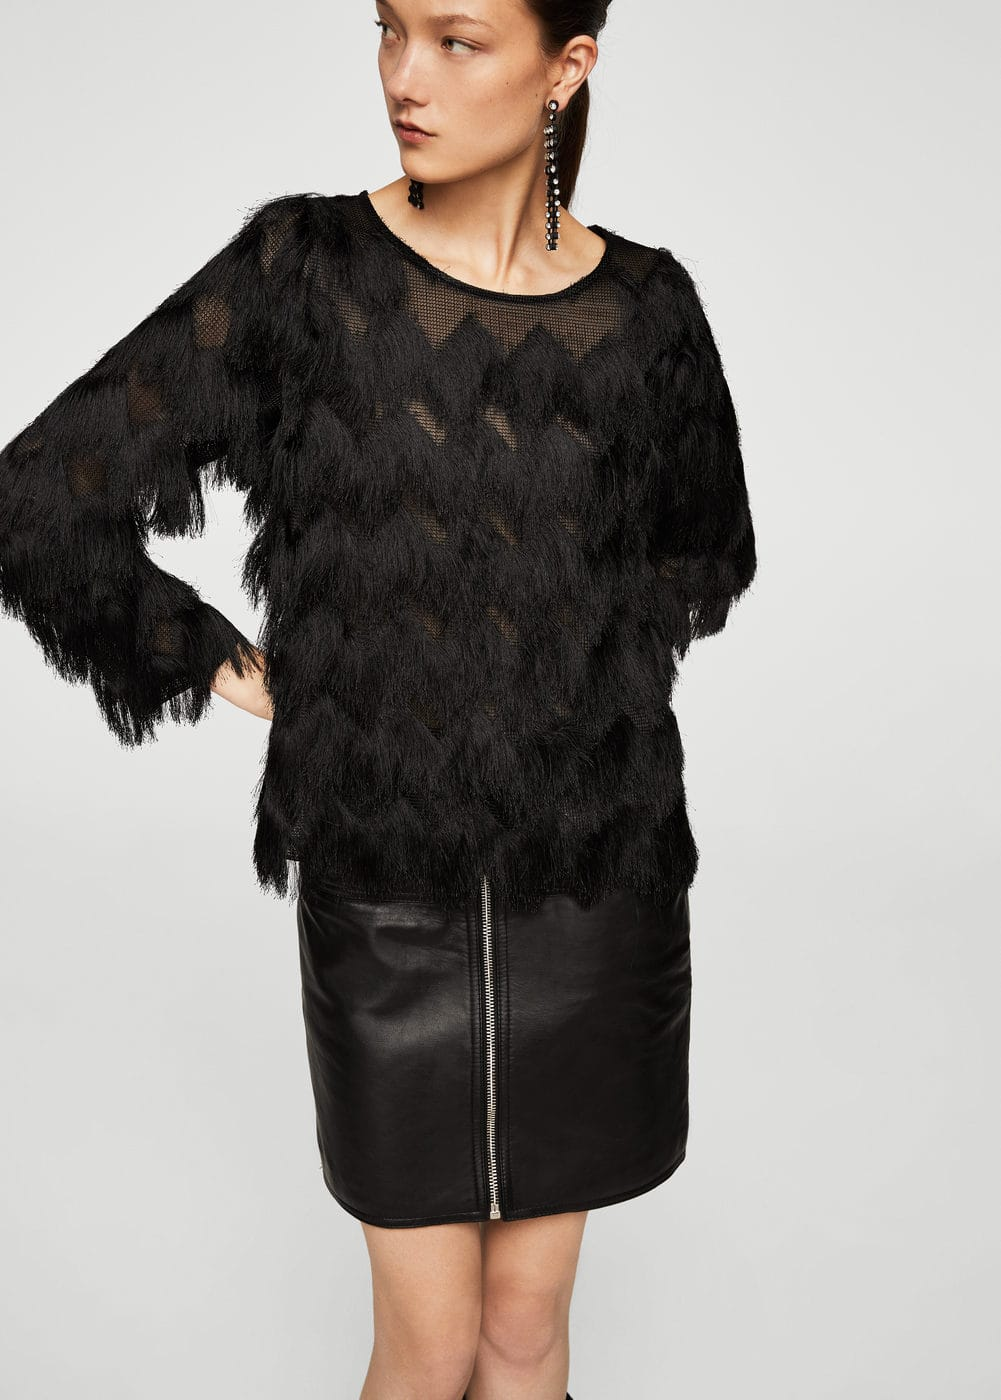 Fringed detail blouse | MANGO